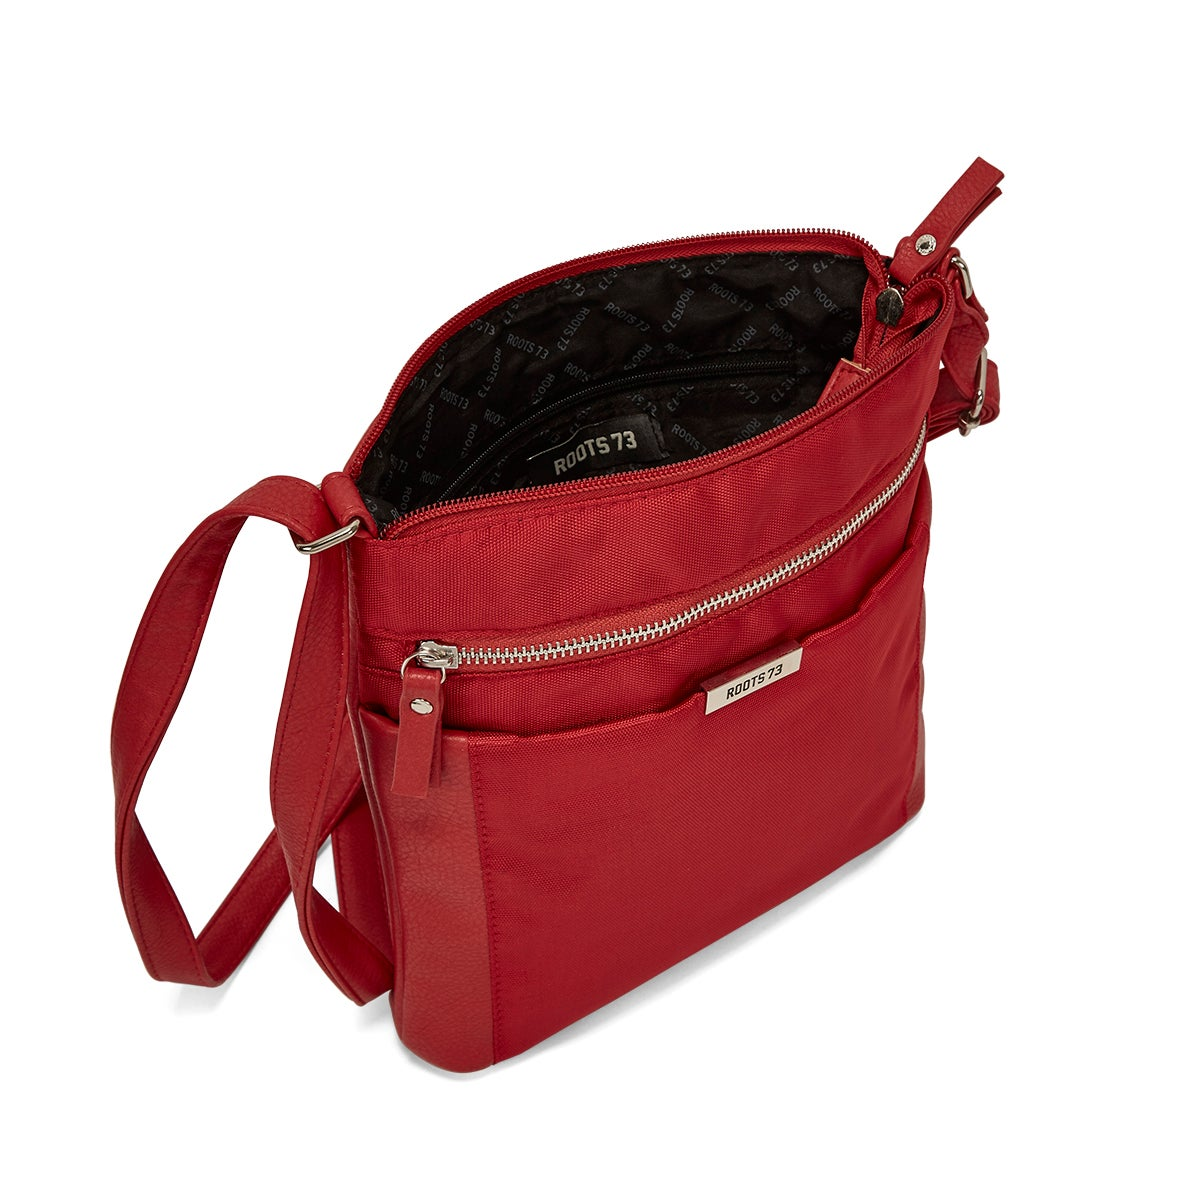 Sac bandouli�re nrd/sud Roots73, rge, fe